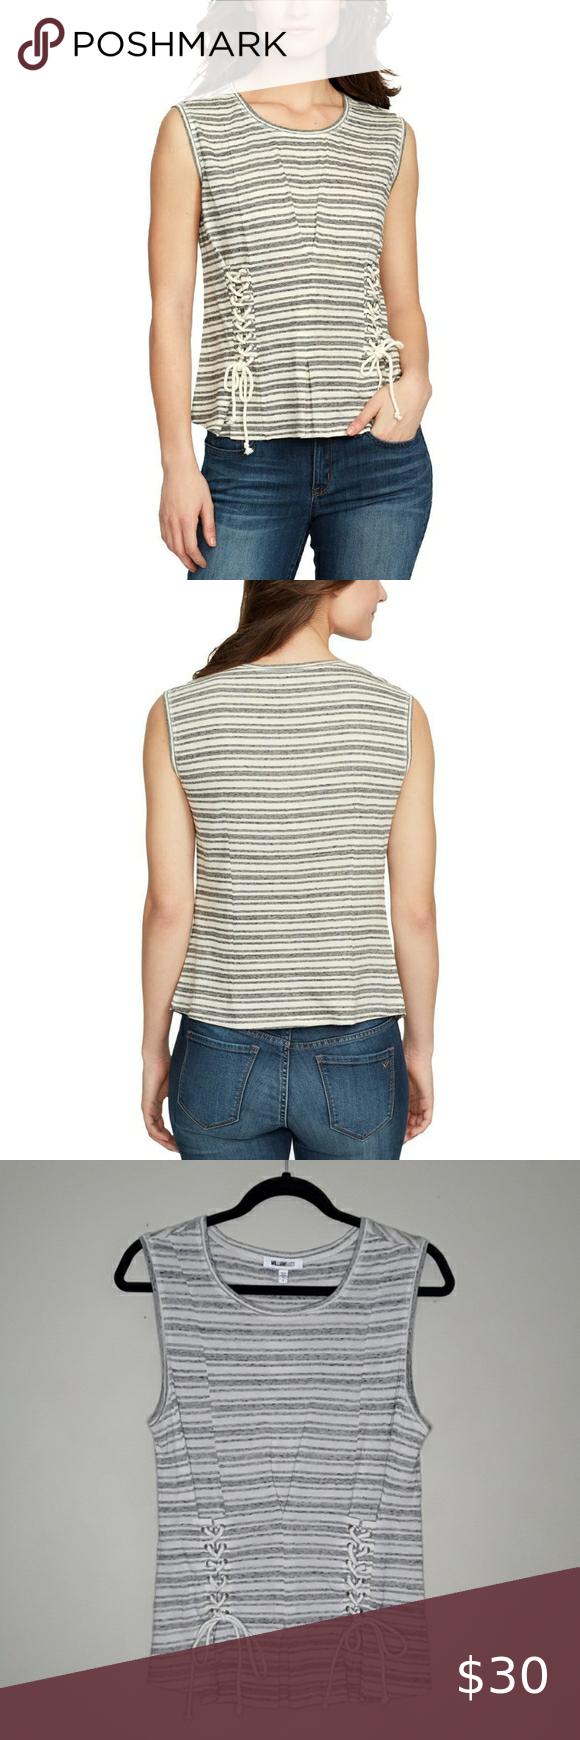 William Rast Tommie Lace Up Sides Sleeveless Tee S Size Small  NWT Cream/gray stripe  Popover Crew neck Lace up side detail Fold over detail Cotton/polyester/viscose  Measurements are approximate   Pit to pit 17